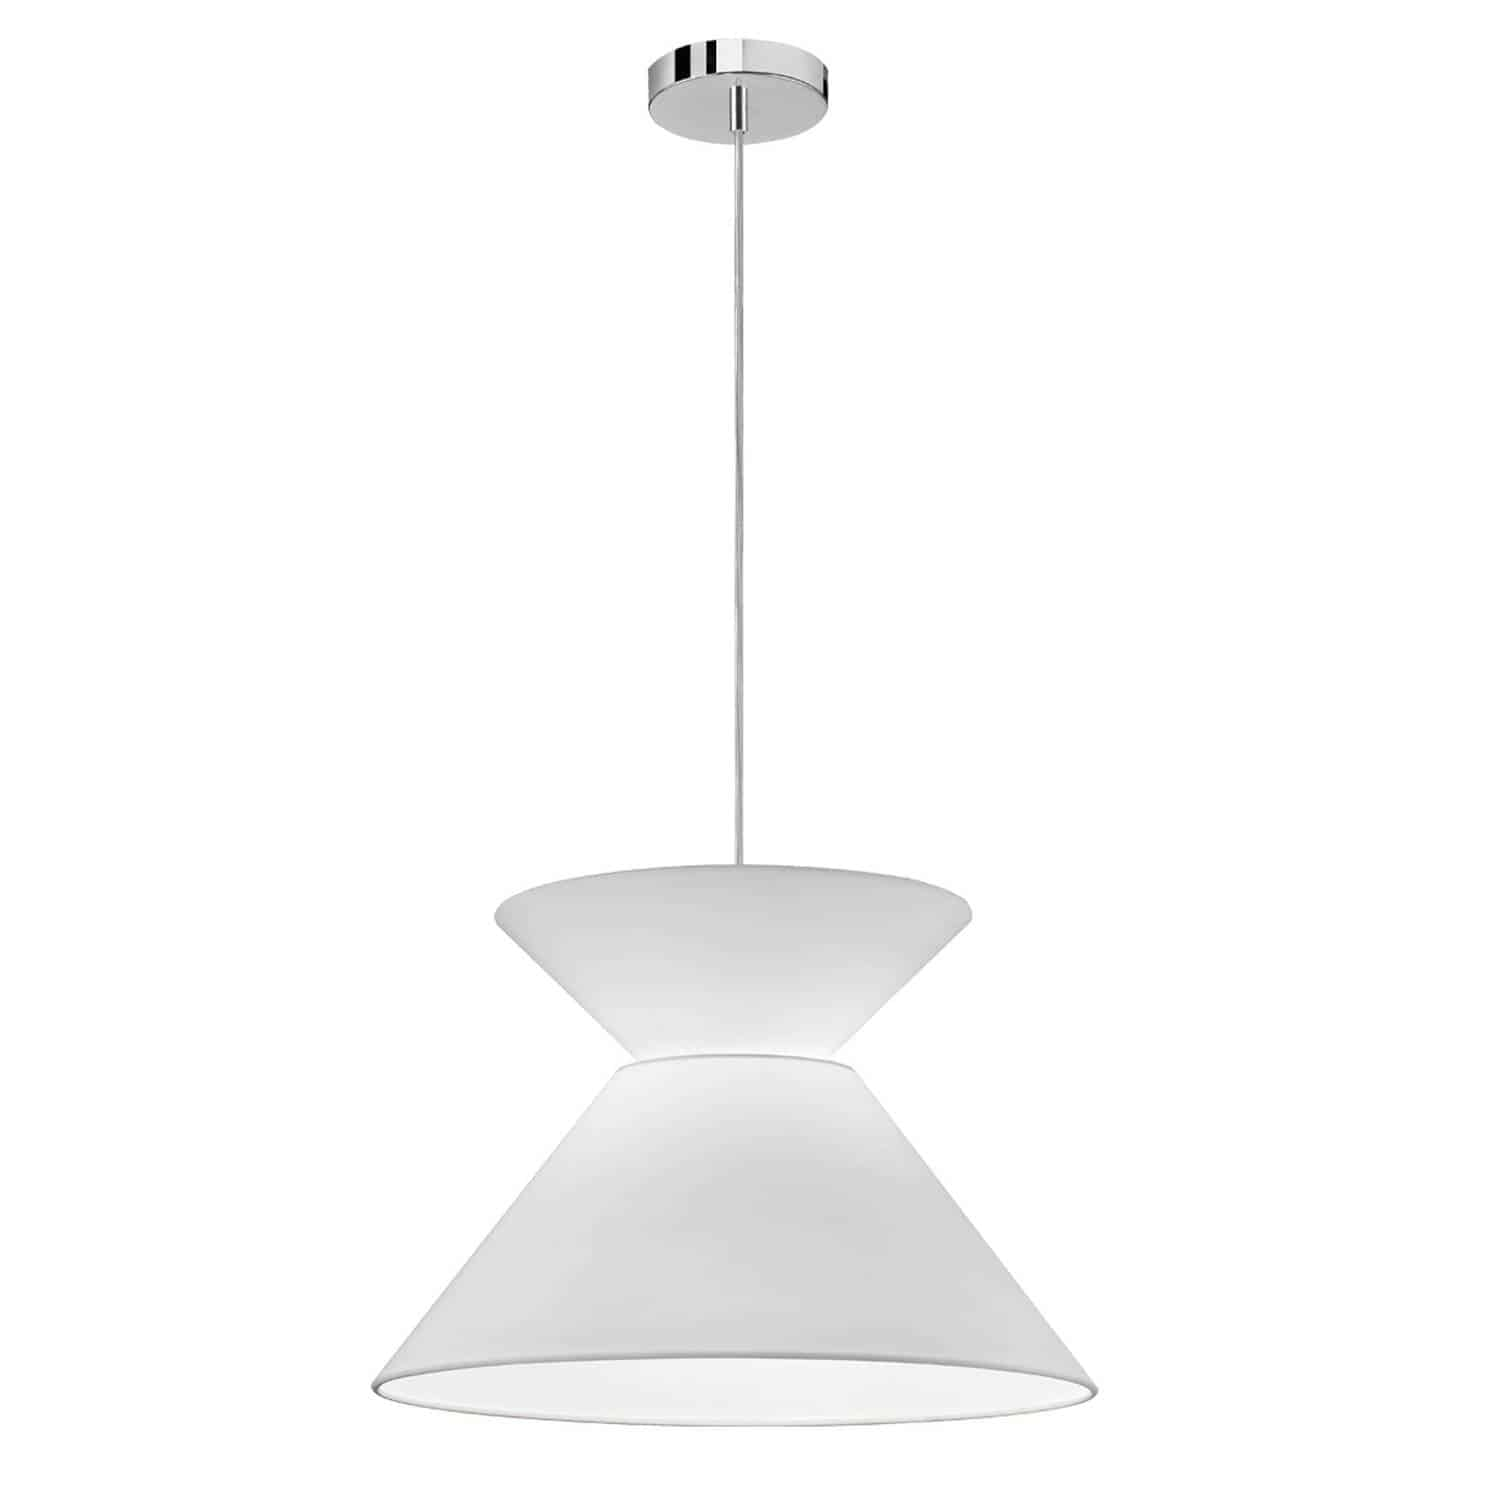 1 Light Patricia Pendant, Polished Chrome with White Shade